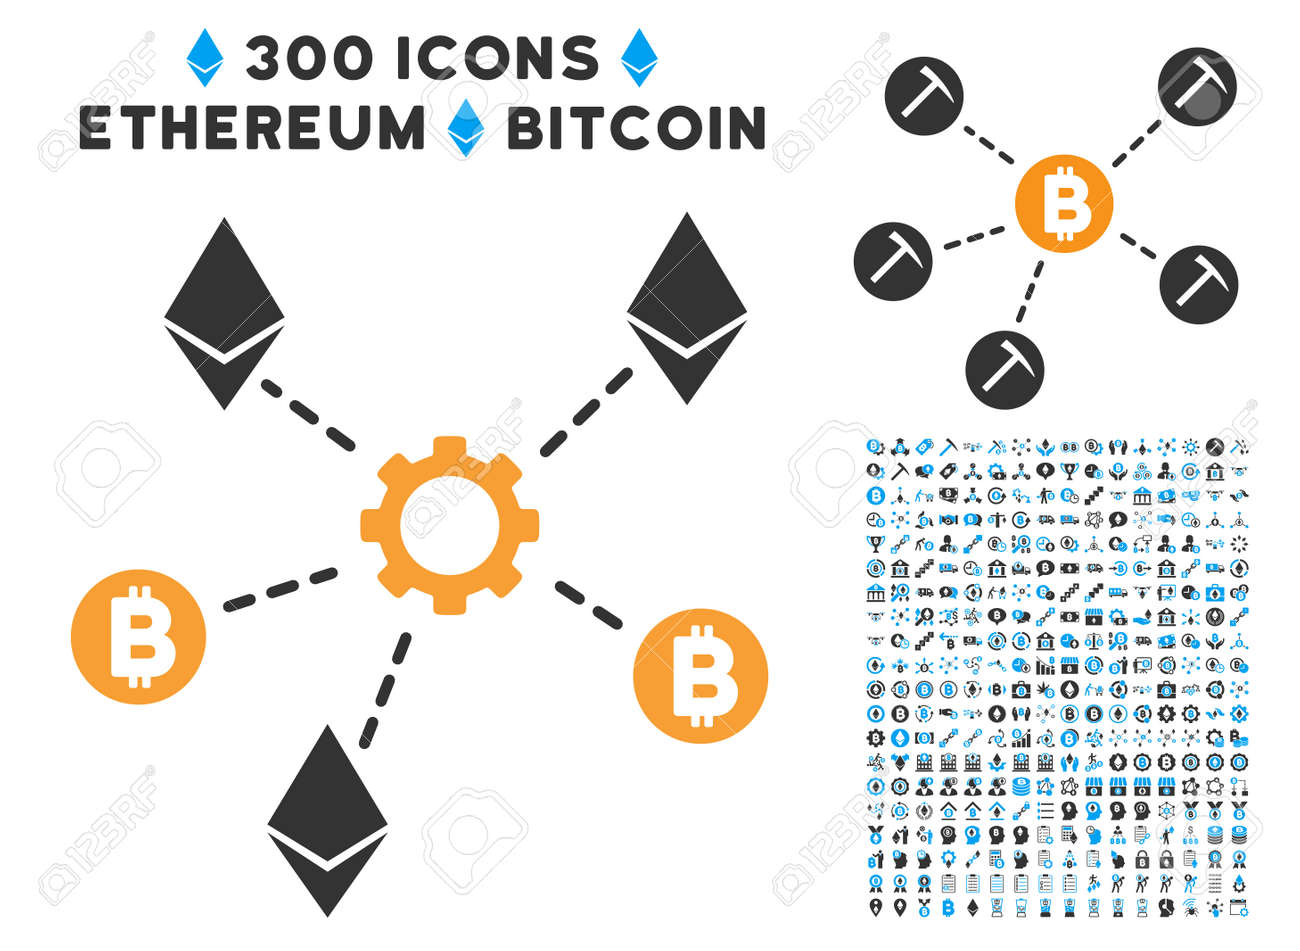 Cryptocurrency Network Nodes Icon With 300 Blockchain Bitcoin Ethereum Smart Contract Pictograms